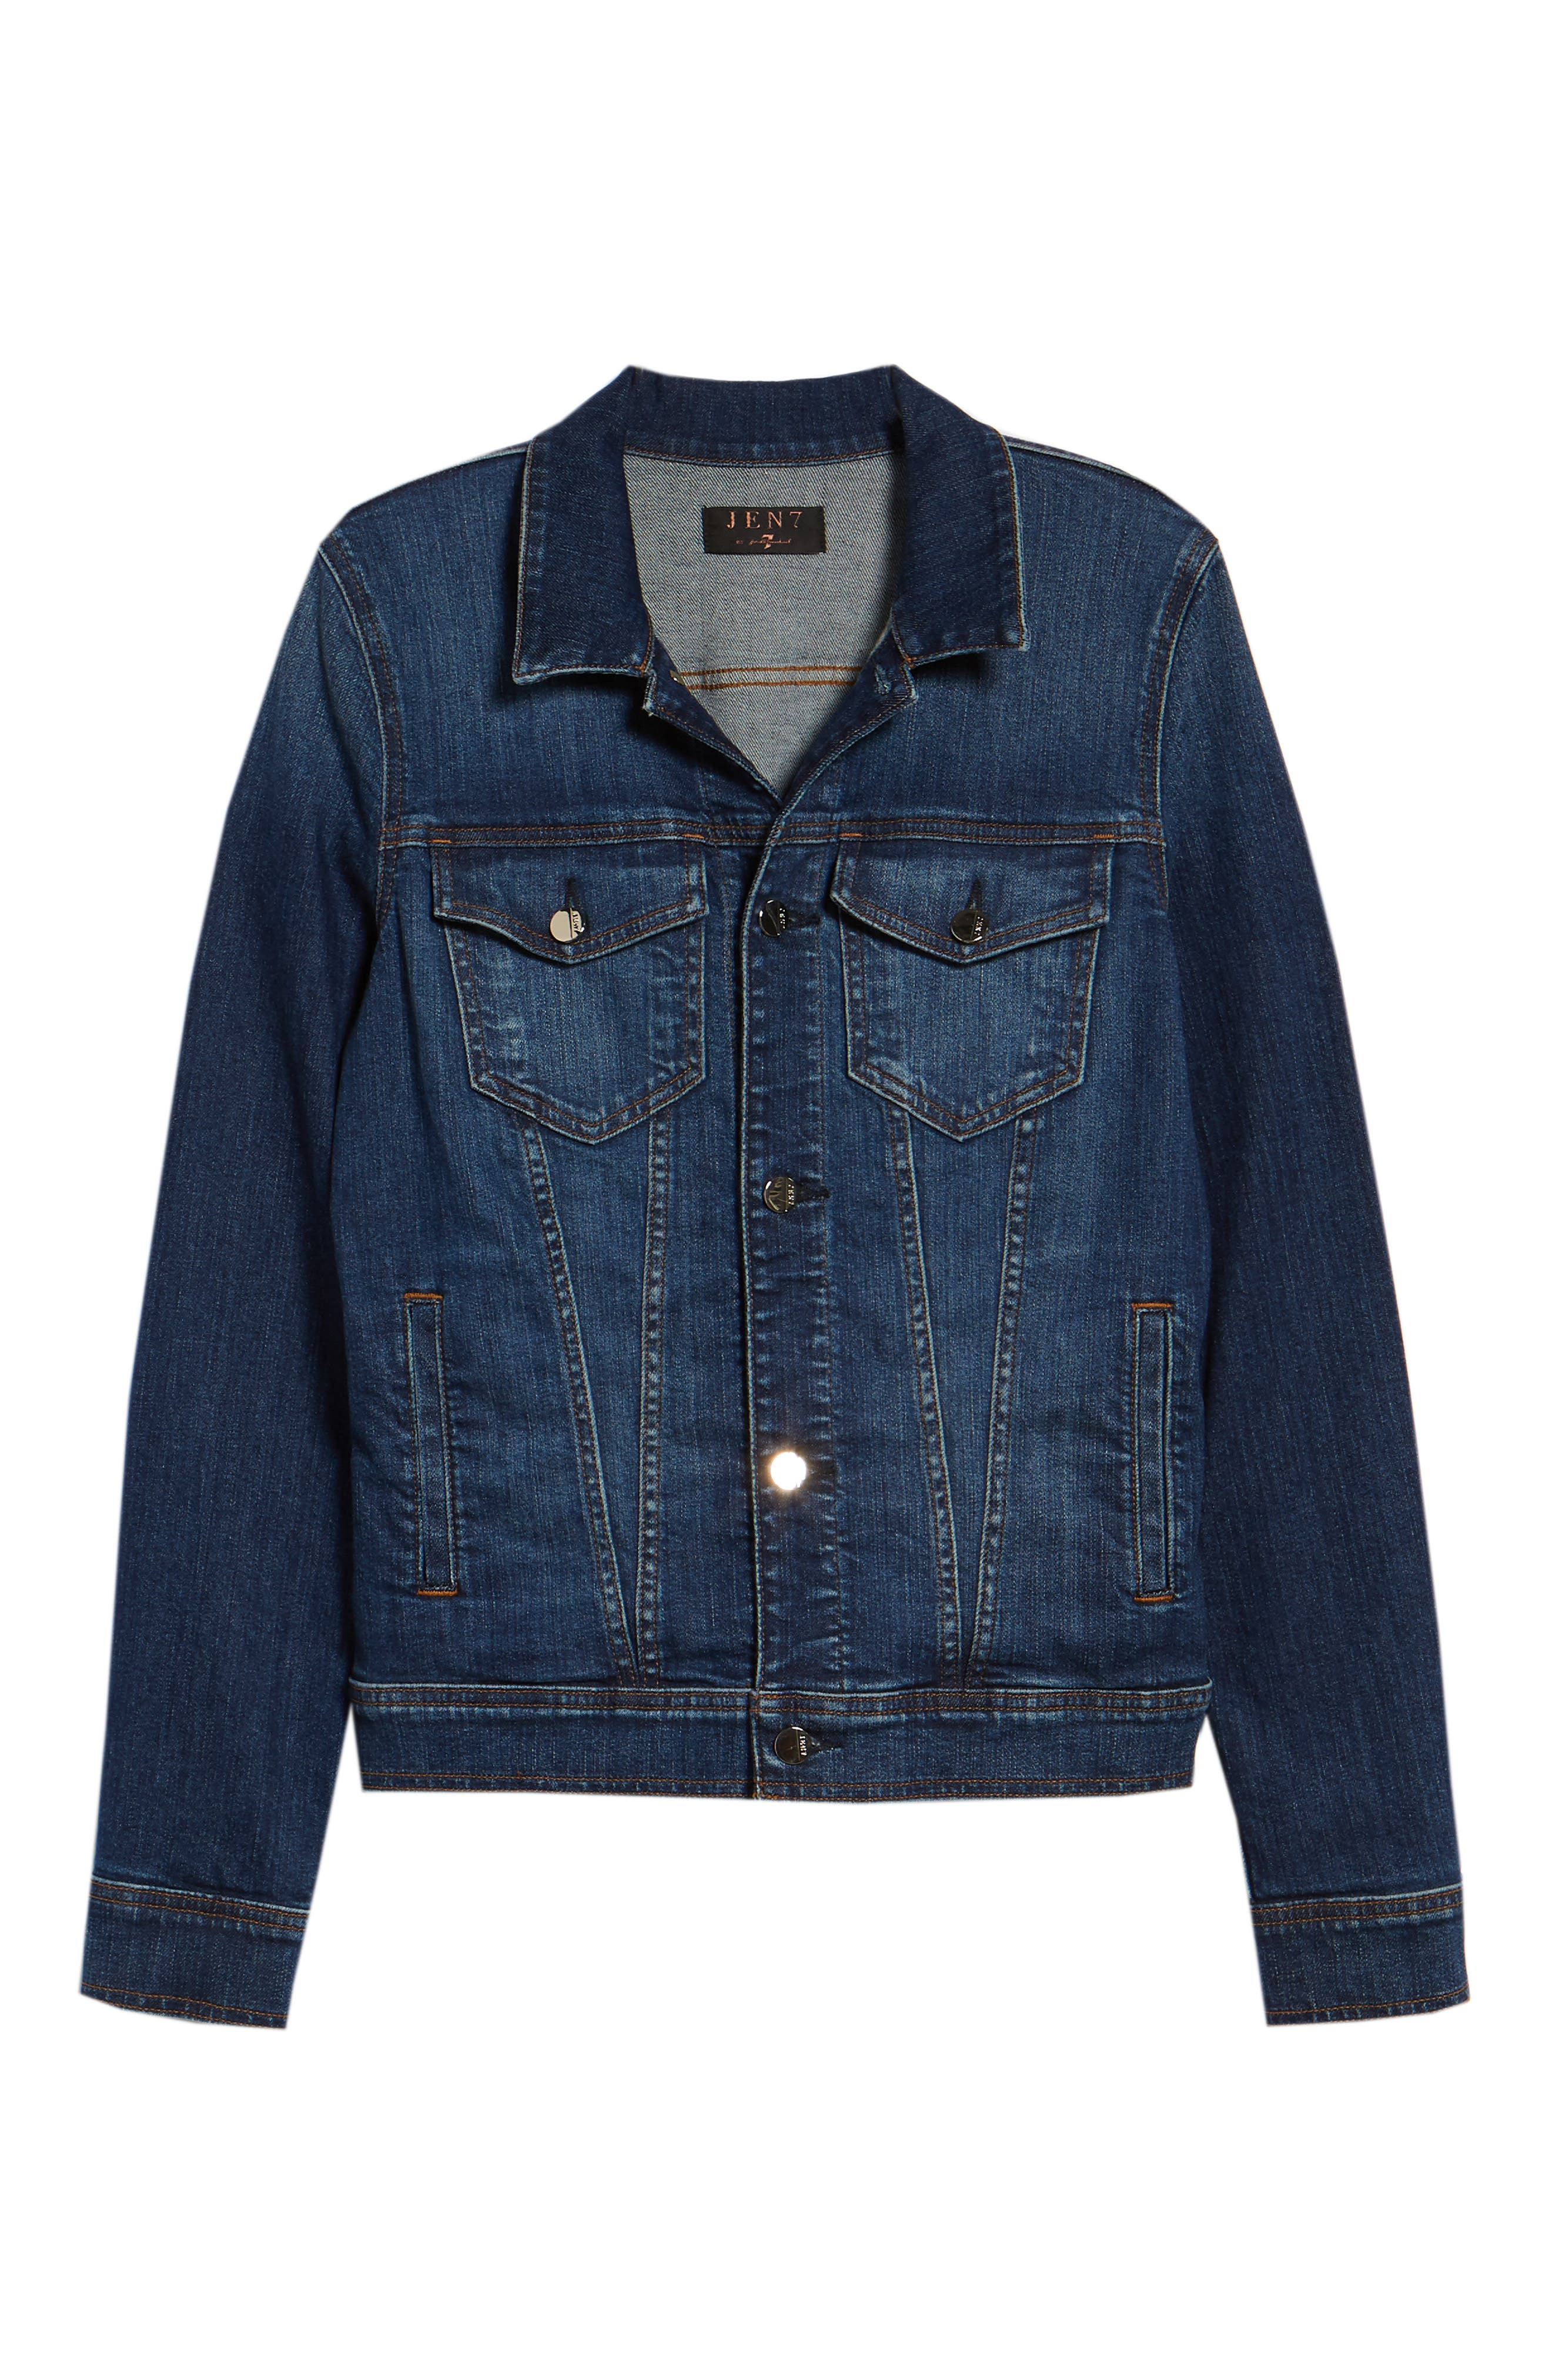 JEN7 BY 7 FOR ALL MANKIND, Classic Denim Jacket, Alternate thumbnail 5, color, 403